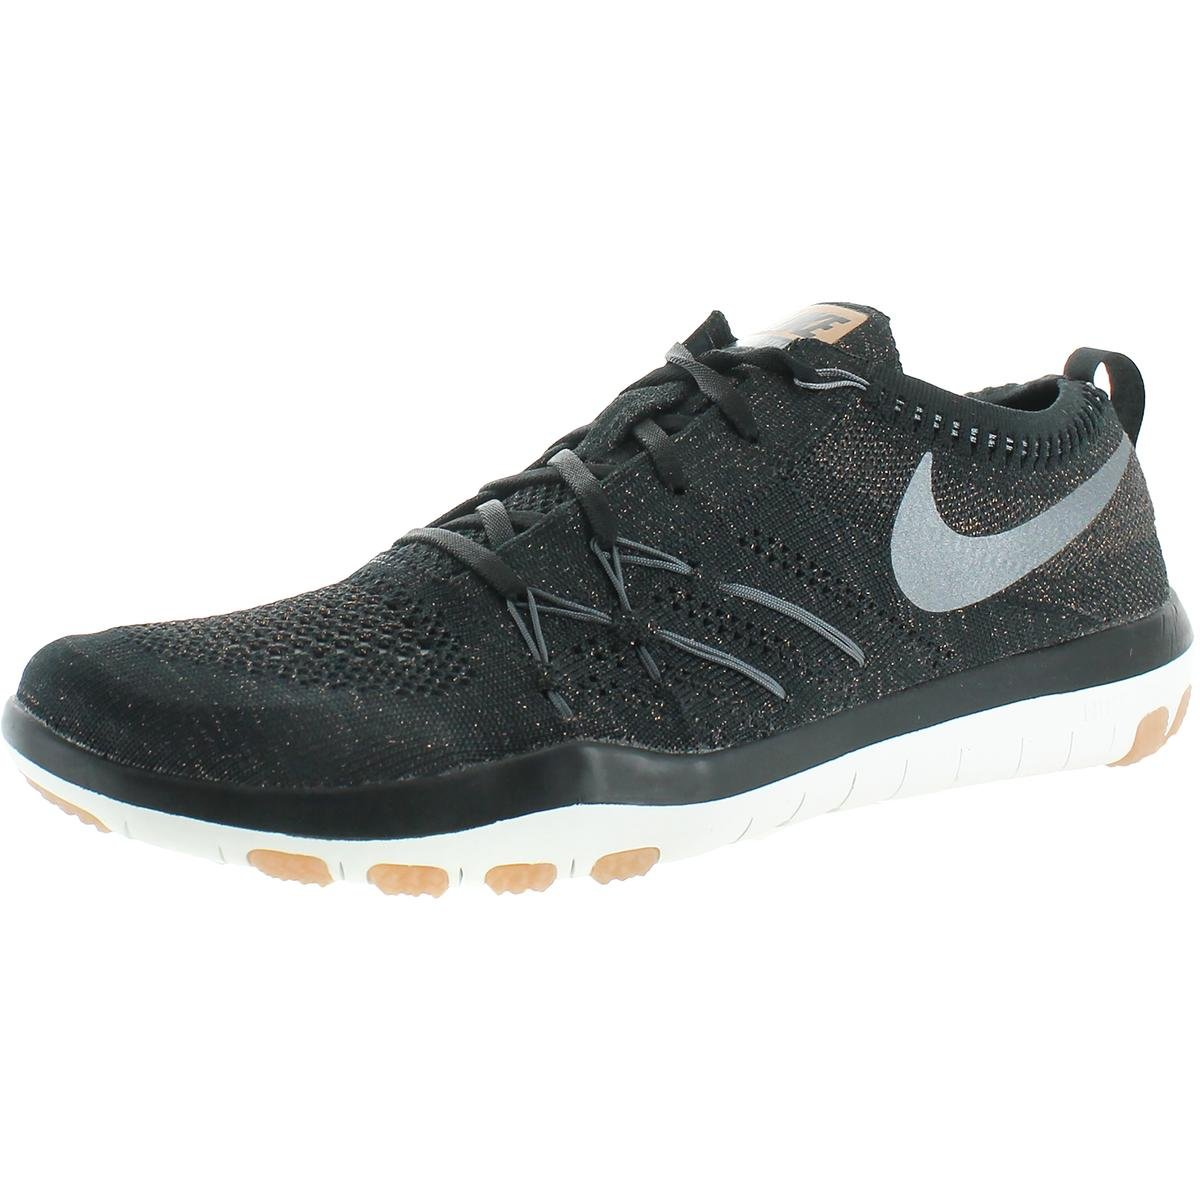 best sneakers 7634c 3532a Amazon.com   NIKE Womens Free Focus Flyknit Mesh Breathable Trainers Black  11 Medium (B, M)   Road Running